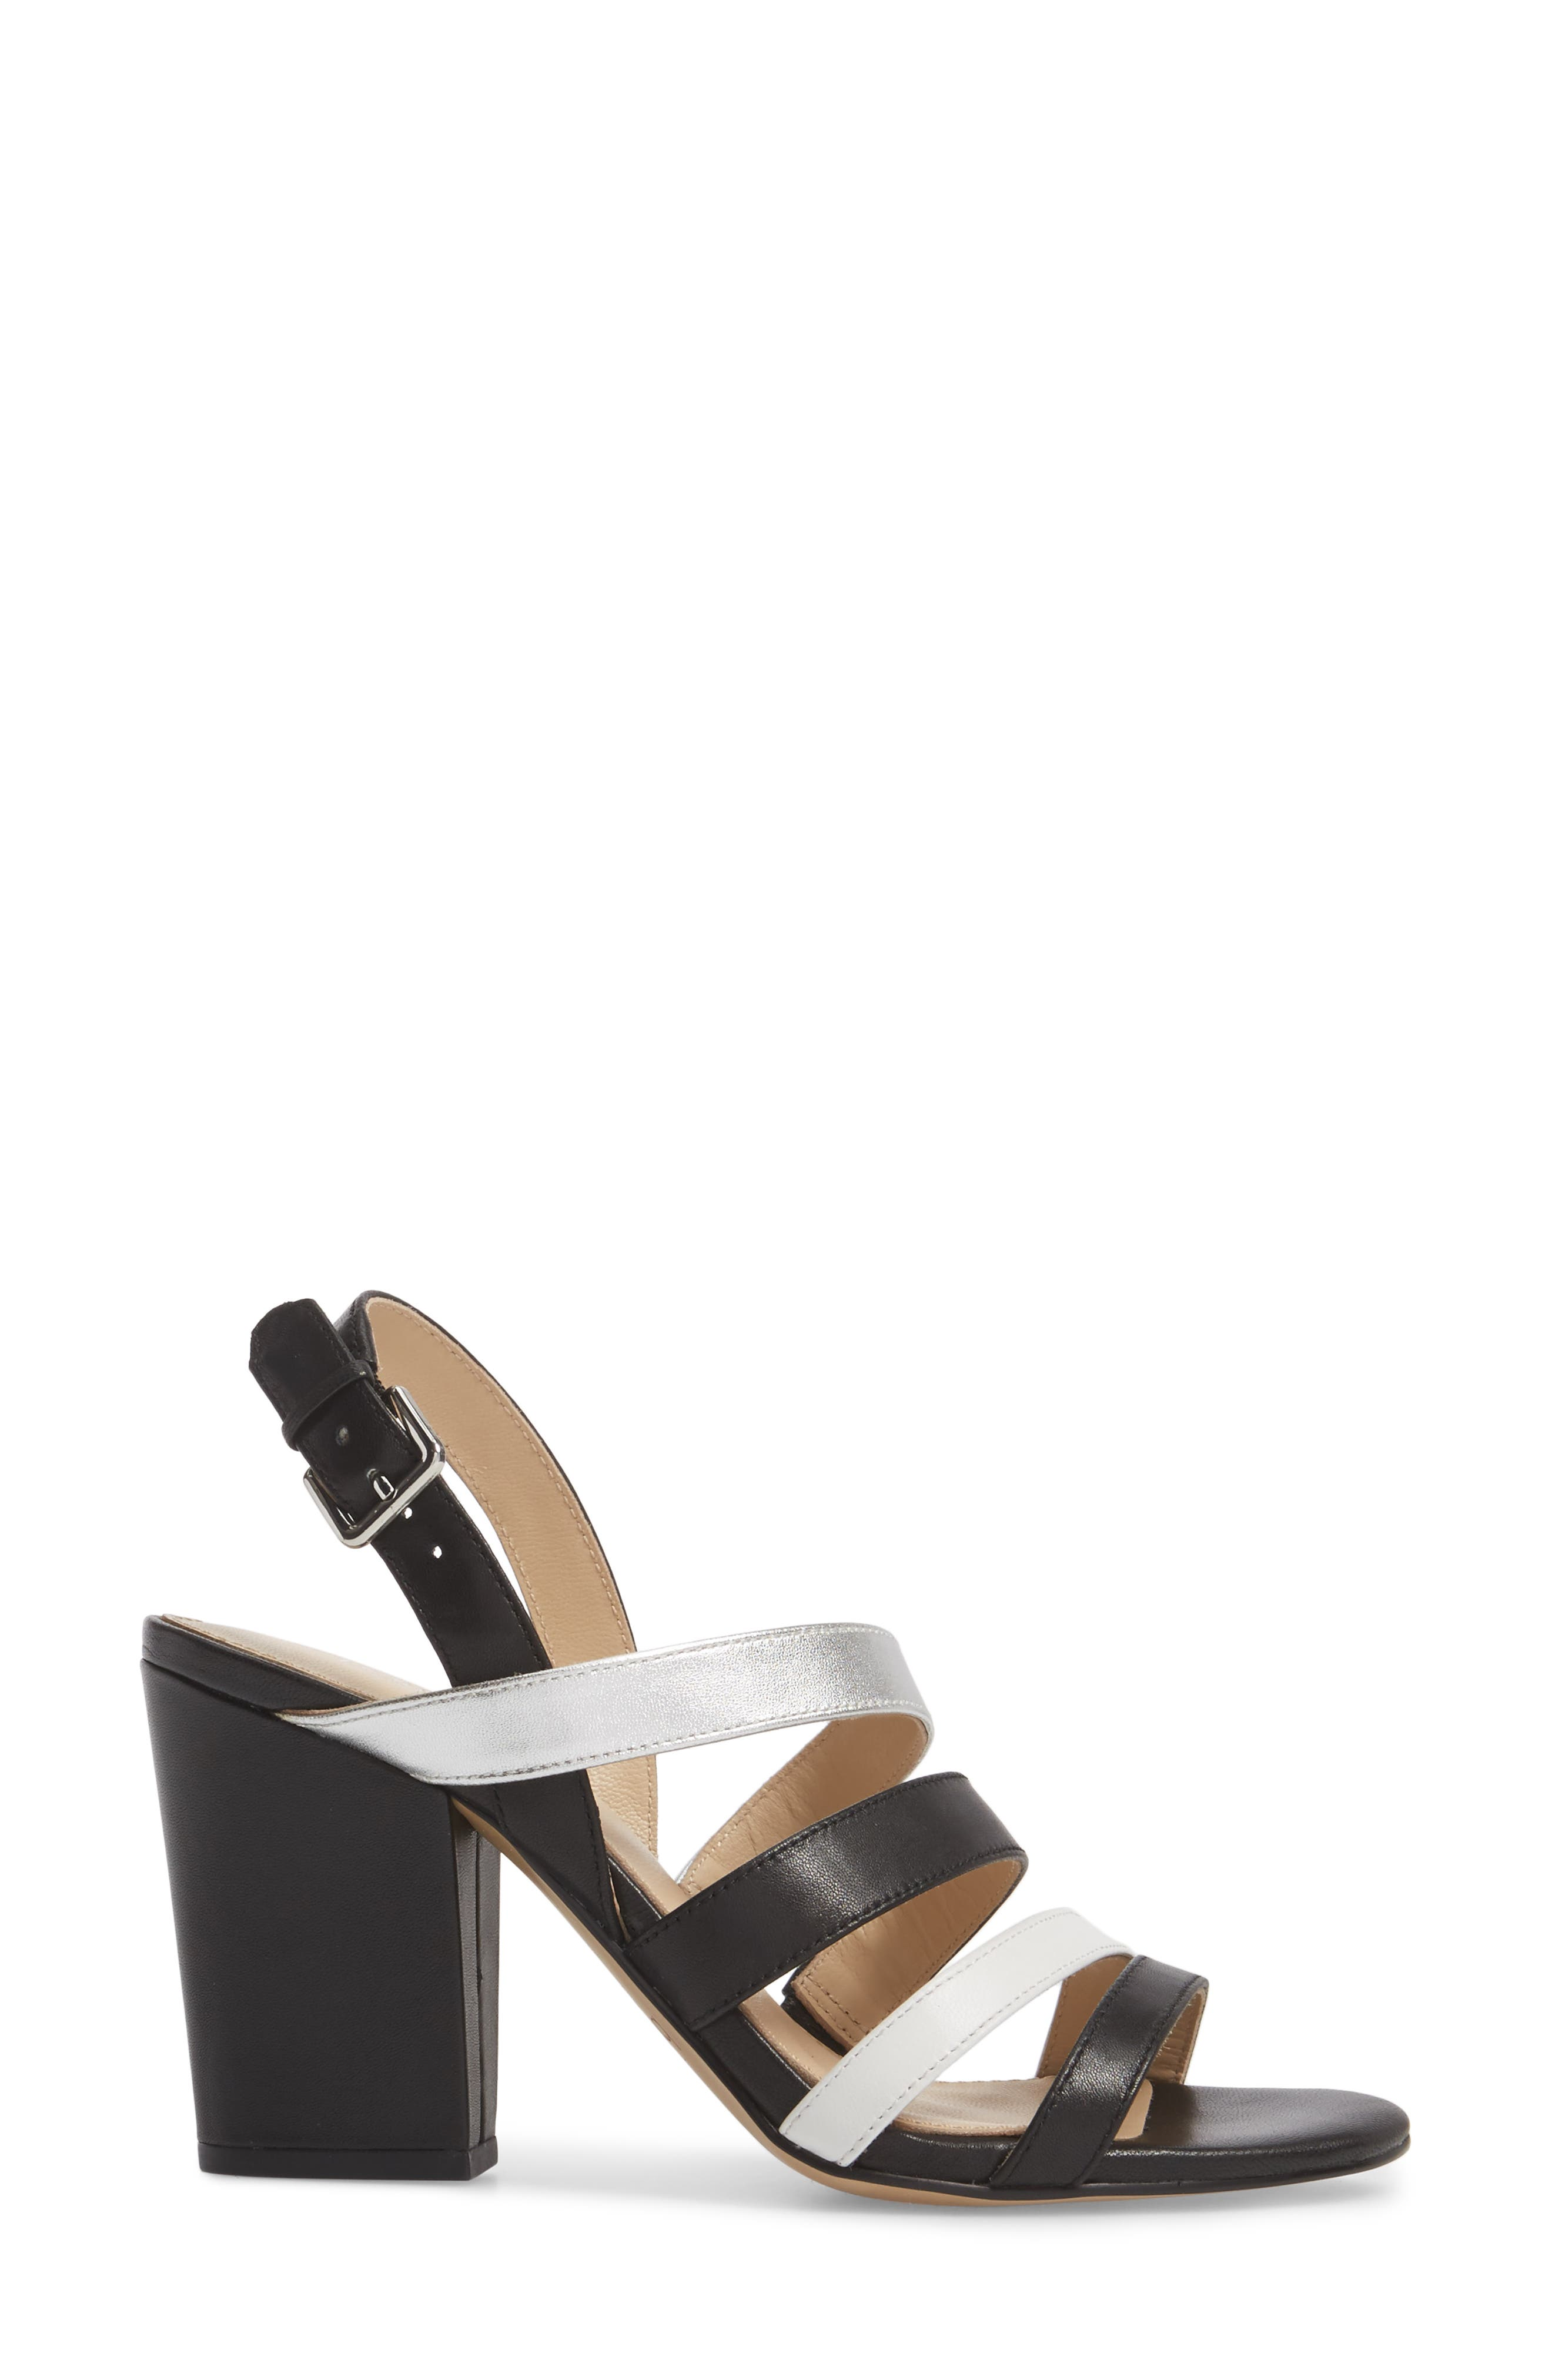 Sera Sandal,                             Alternate thumbnail 3, color,                             Black Multi Leather